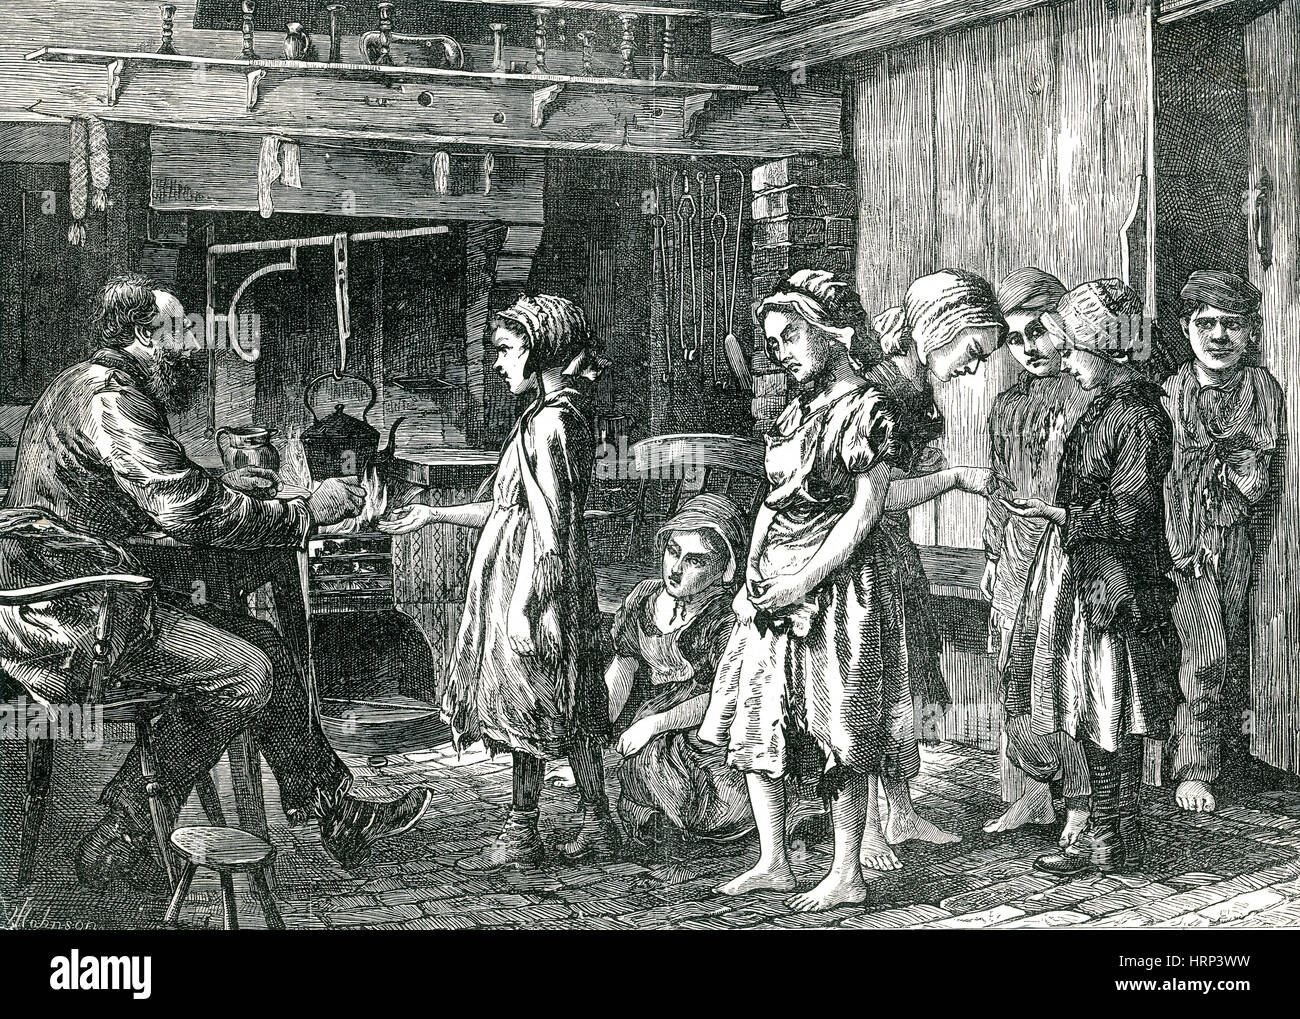 Children Receiving Wages, 1871 - Stock Image